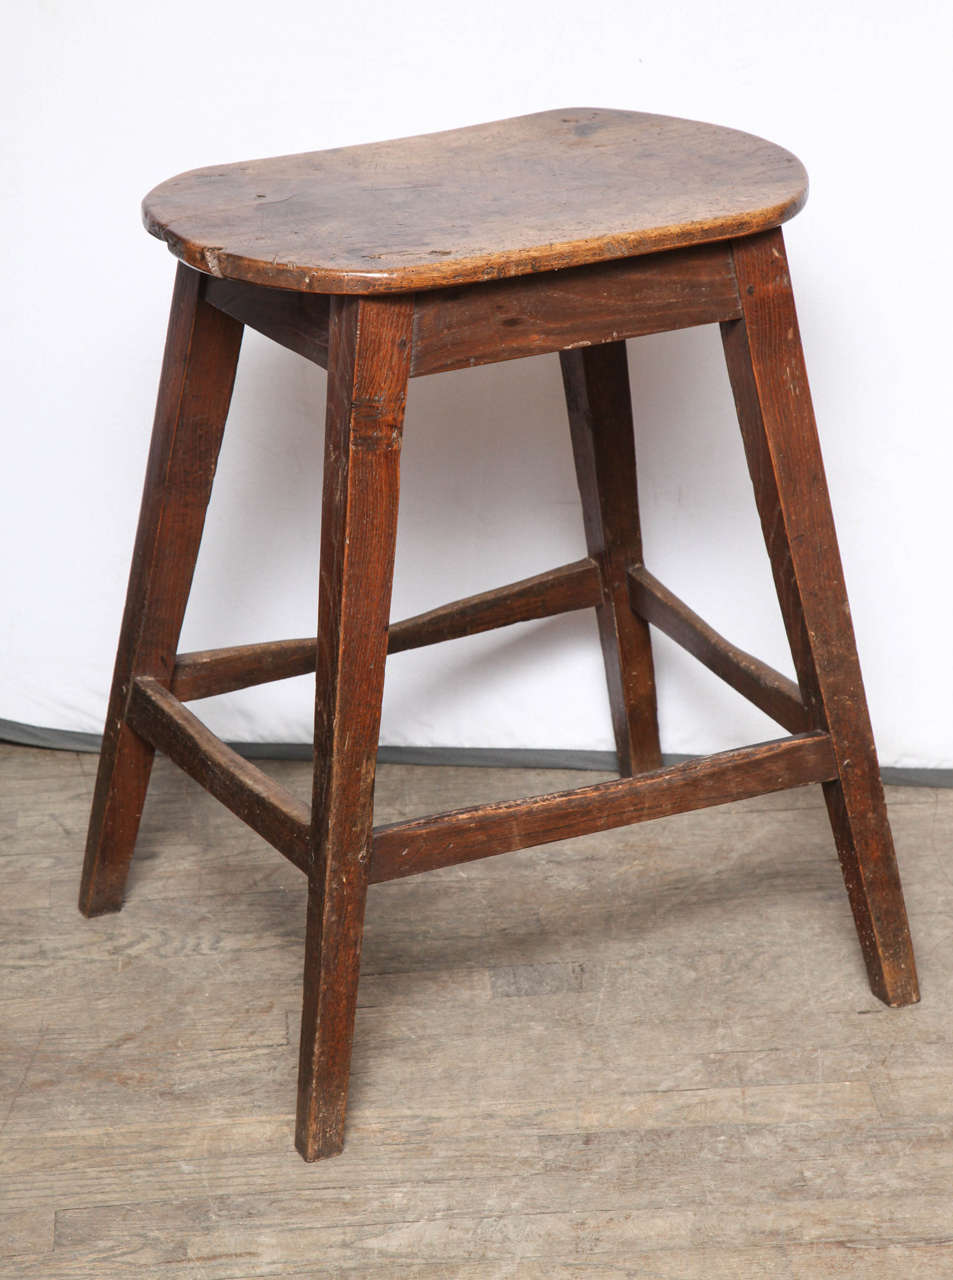 Rare, unusually large kitchen stool.   Handpicked by buyers at Ann-Morris, Inc.